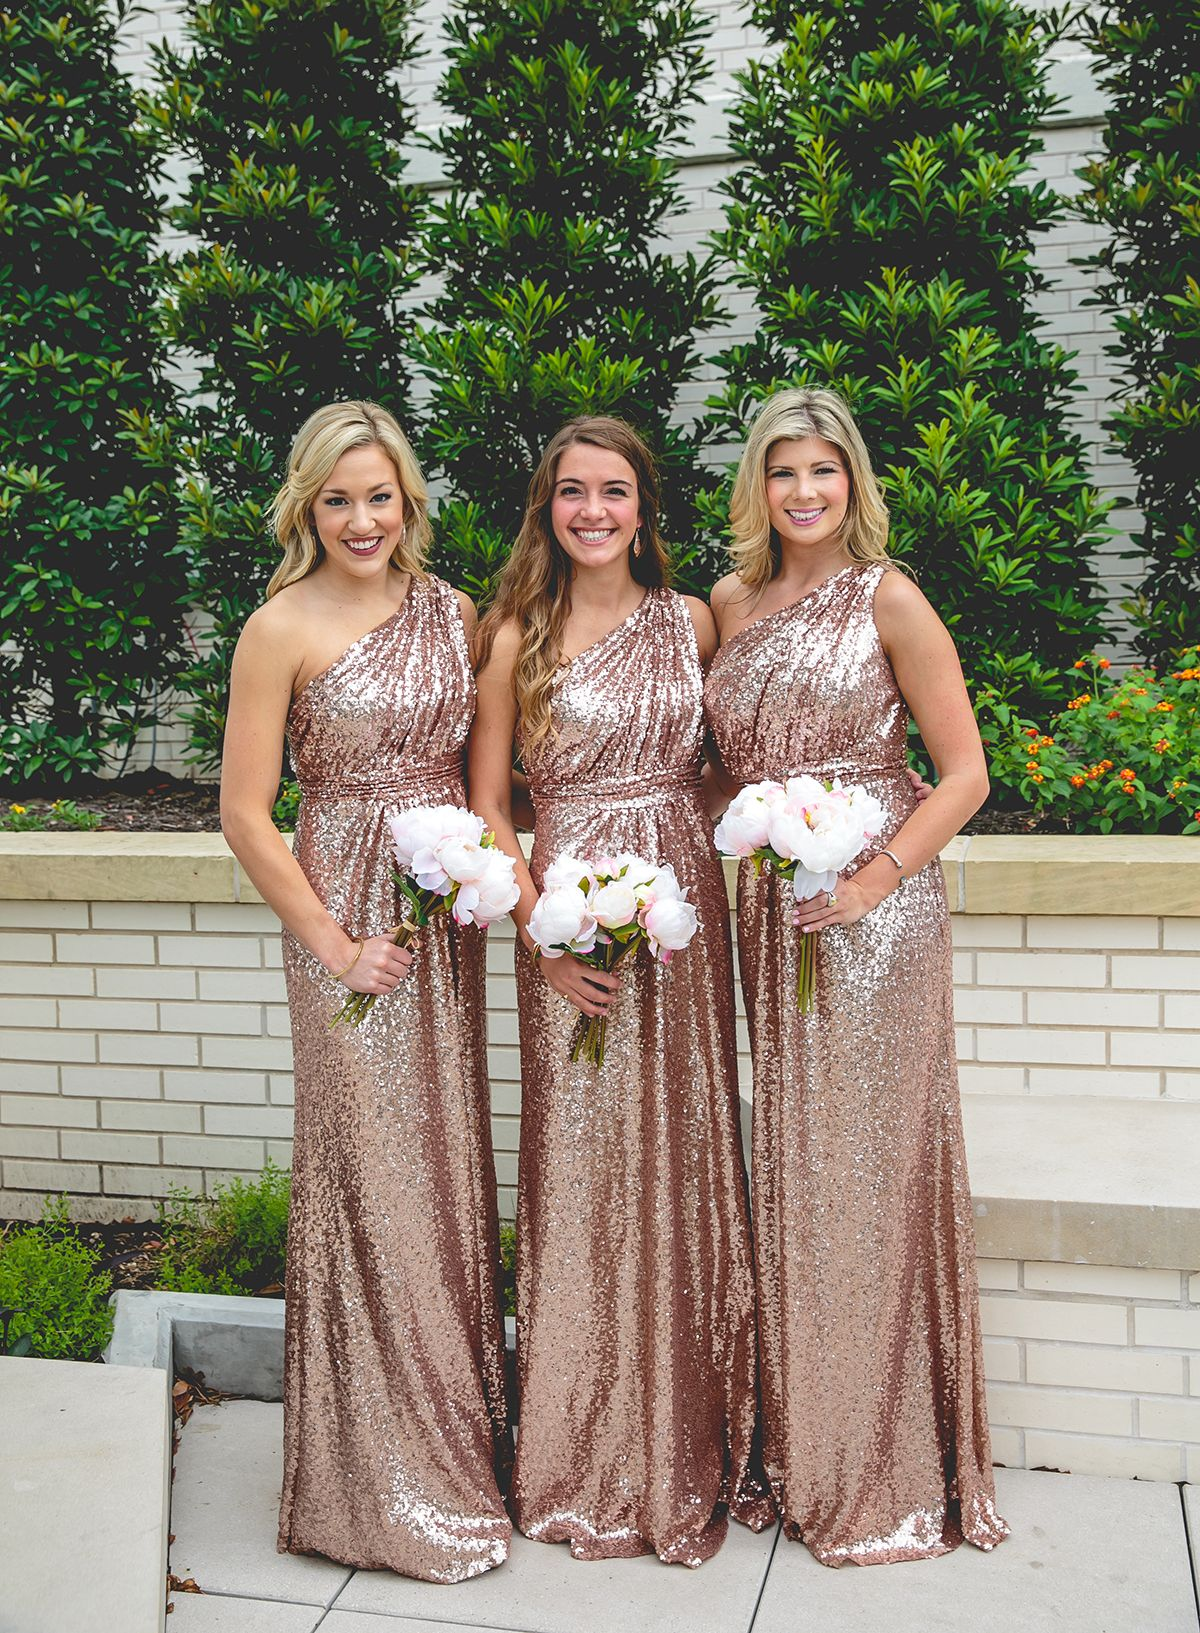 Shoprevelry floor length rose gold sequined bridesmaid dresses shoprevelry floor length rose gold sequined bridesmaid dresses ombrellifo Choice Image